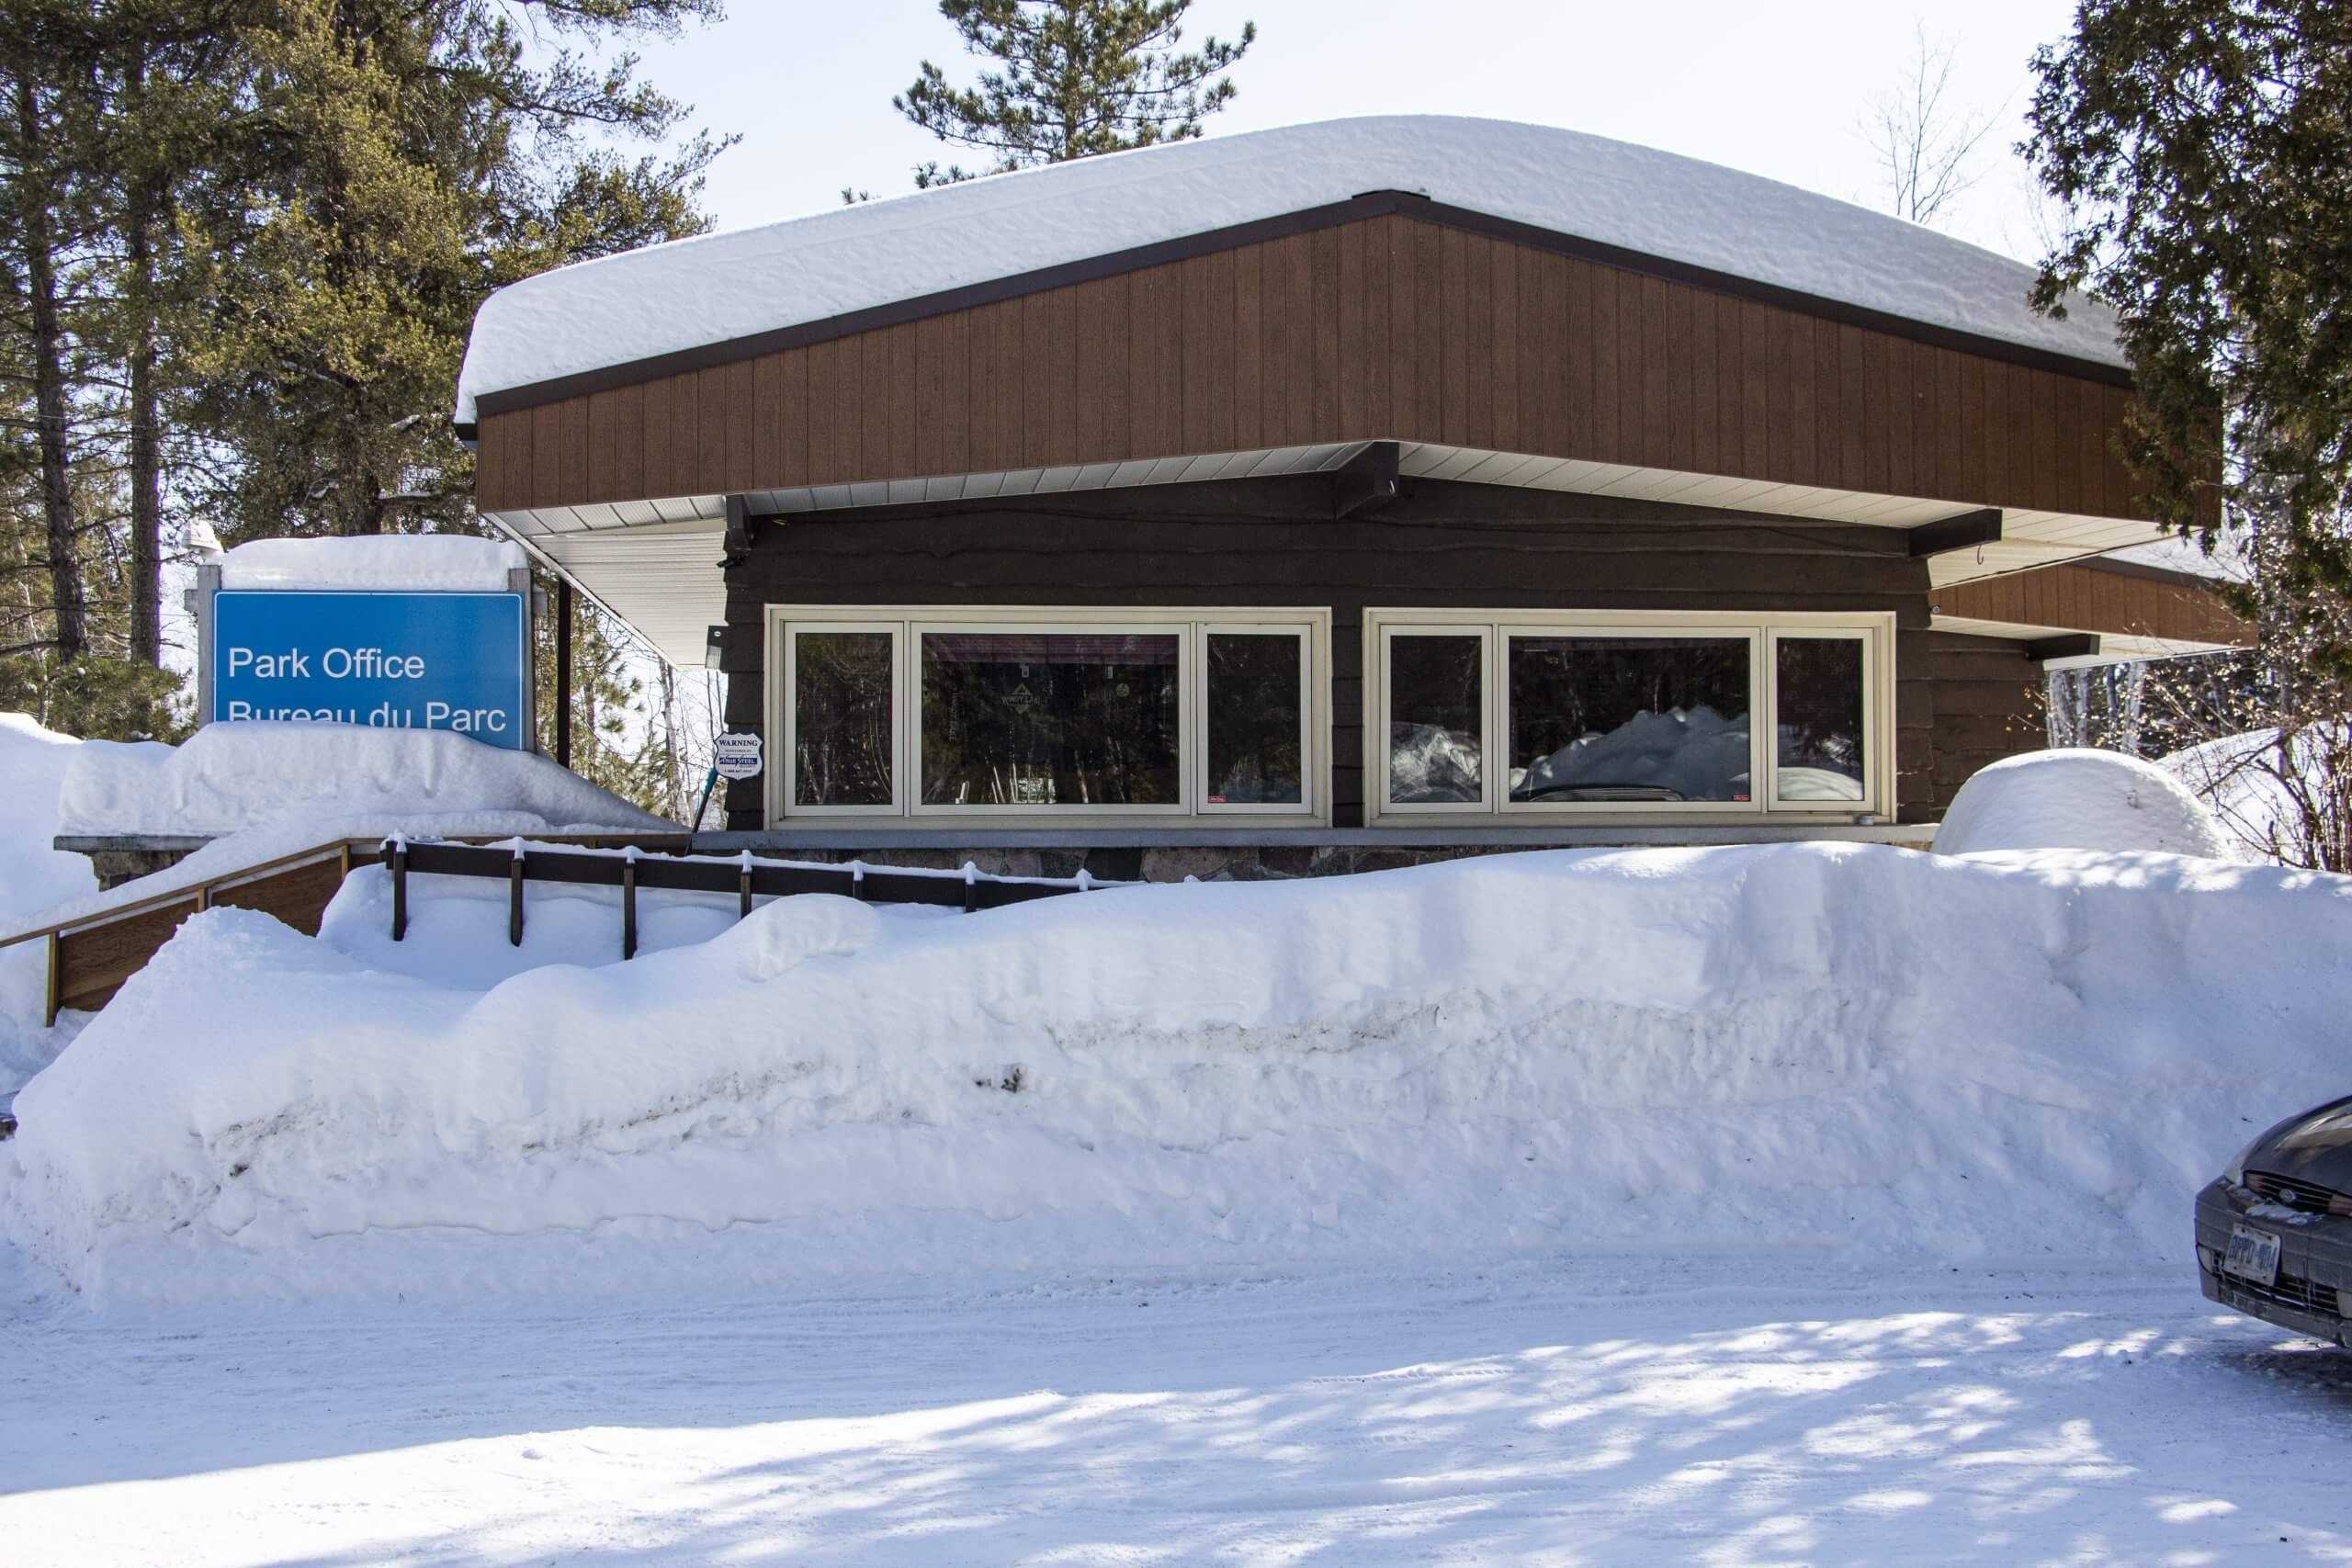 Windy Lake Provincial Park Office Covered By Winter Snow